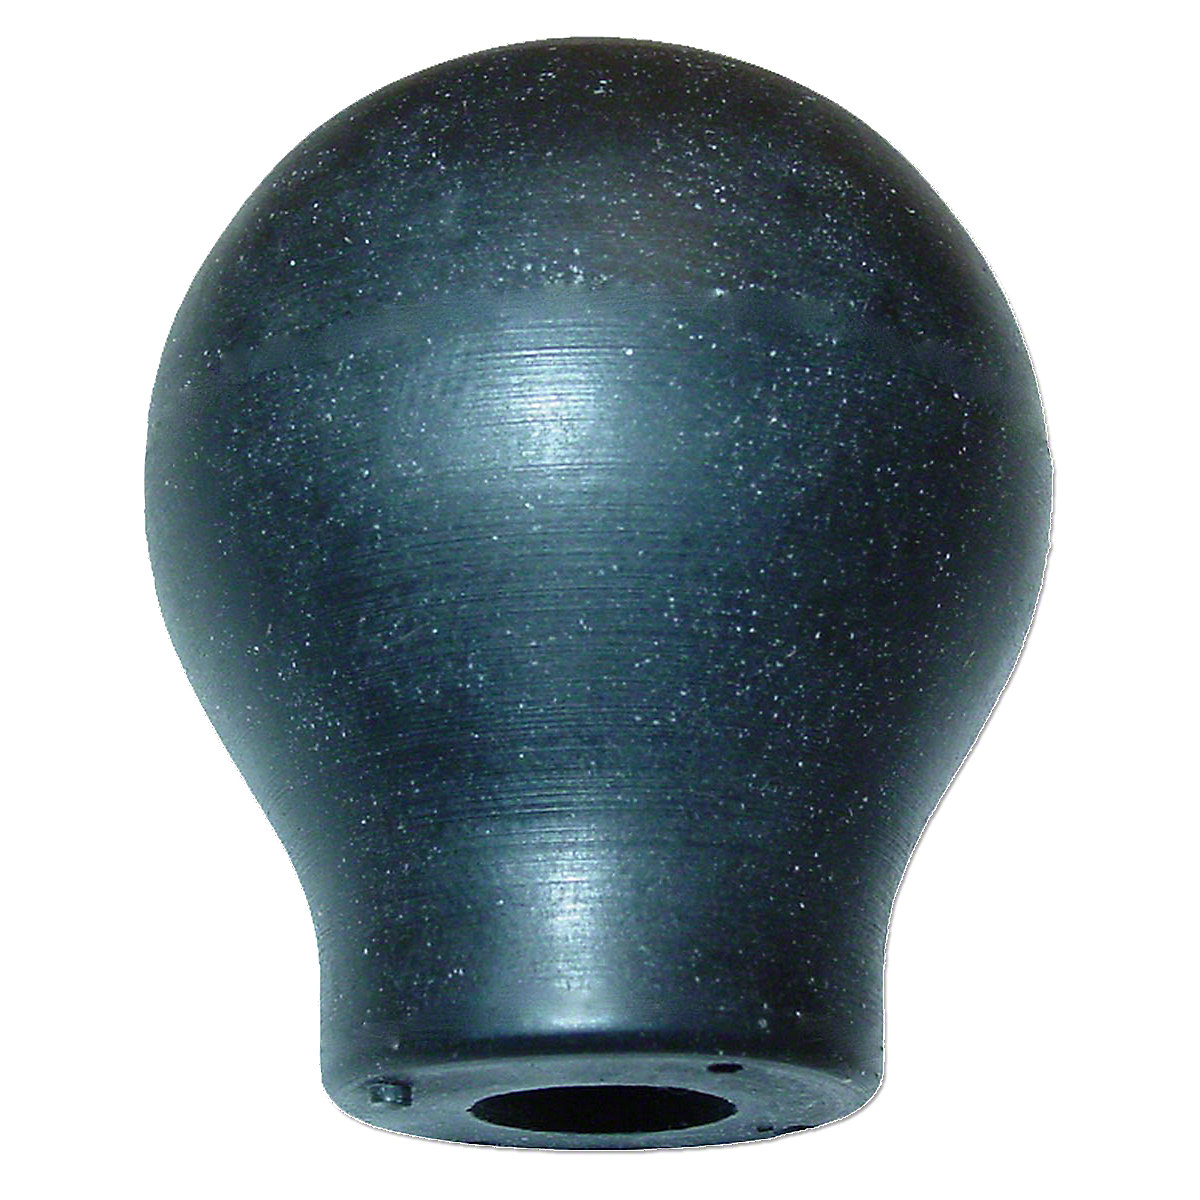 Gear Shift Lever Knob For Allis Chalmers: 190XT, C, D10, D12, D14, D15, D17, D19, D21, 170, 175, 190, 210, 220, B, CA, IB, WD, WD45, 180, 185, 200.